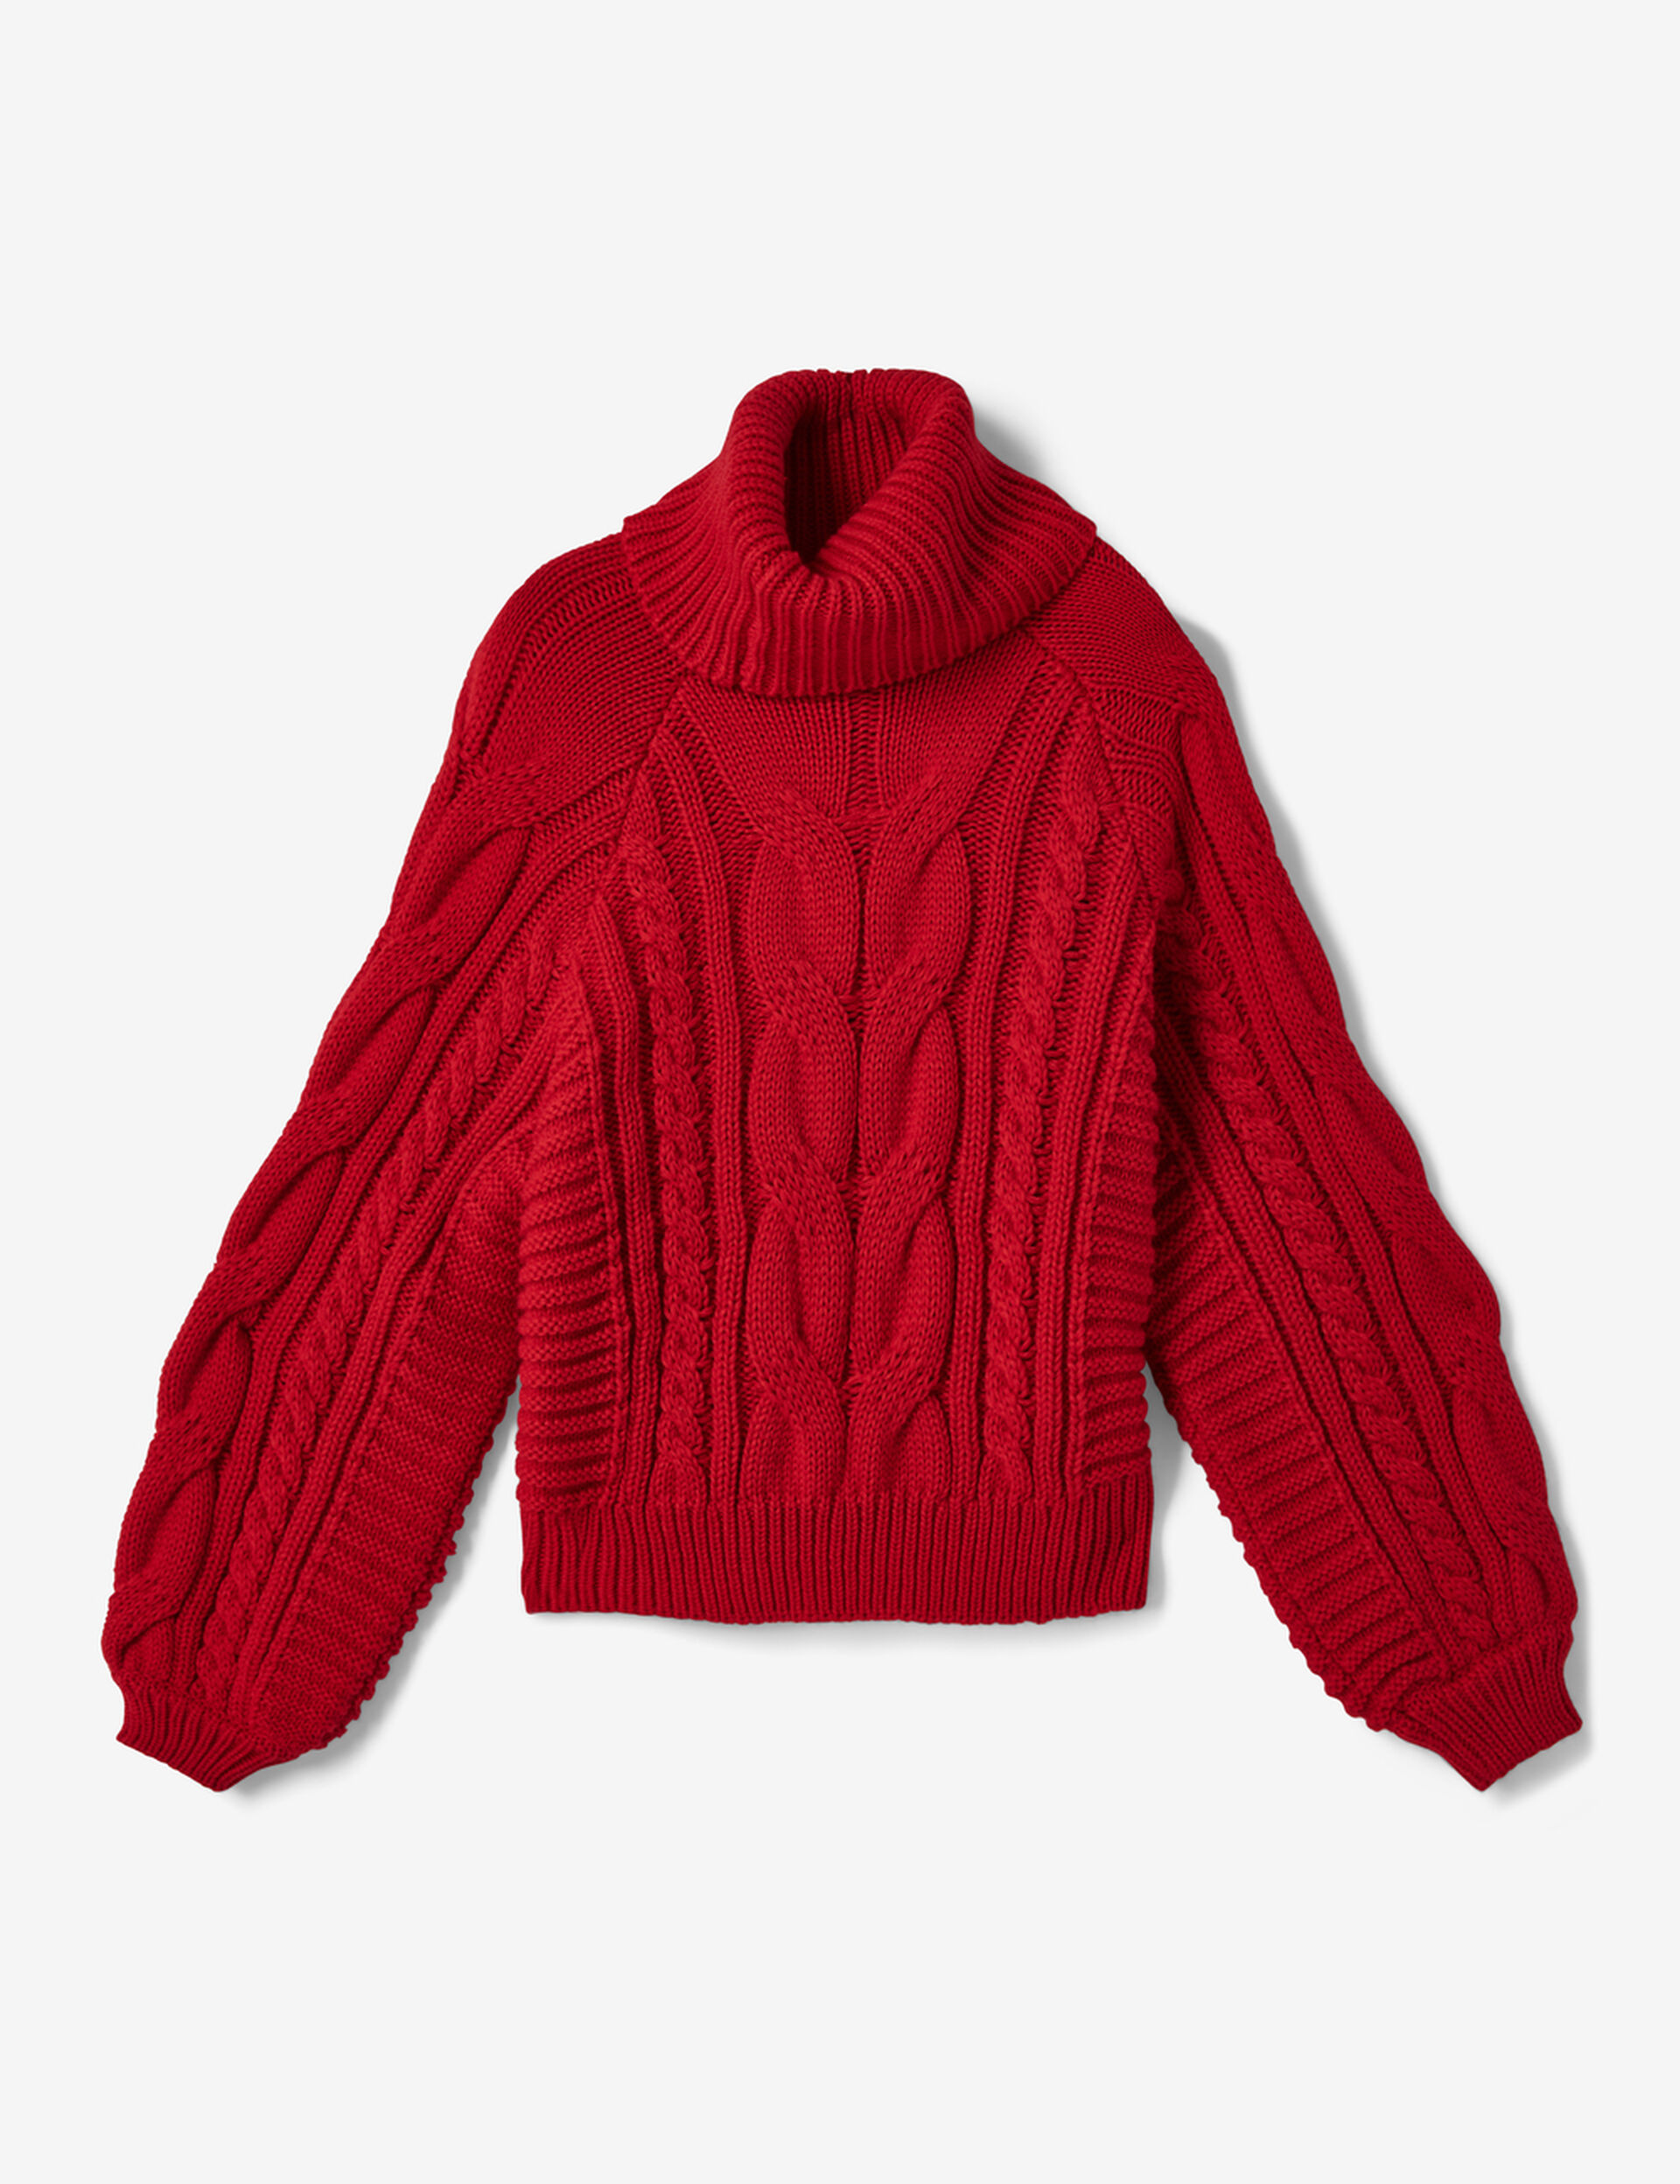 Red braided knit polo neck jumper